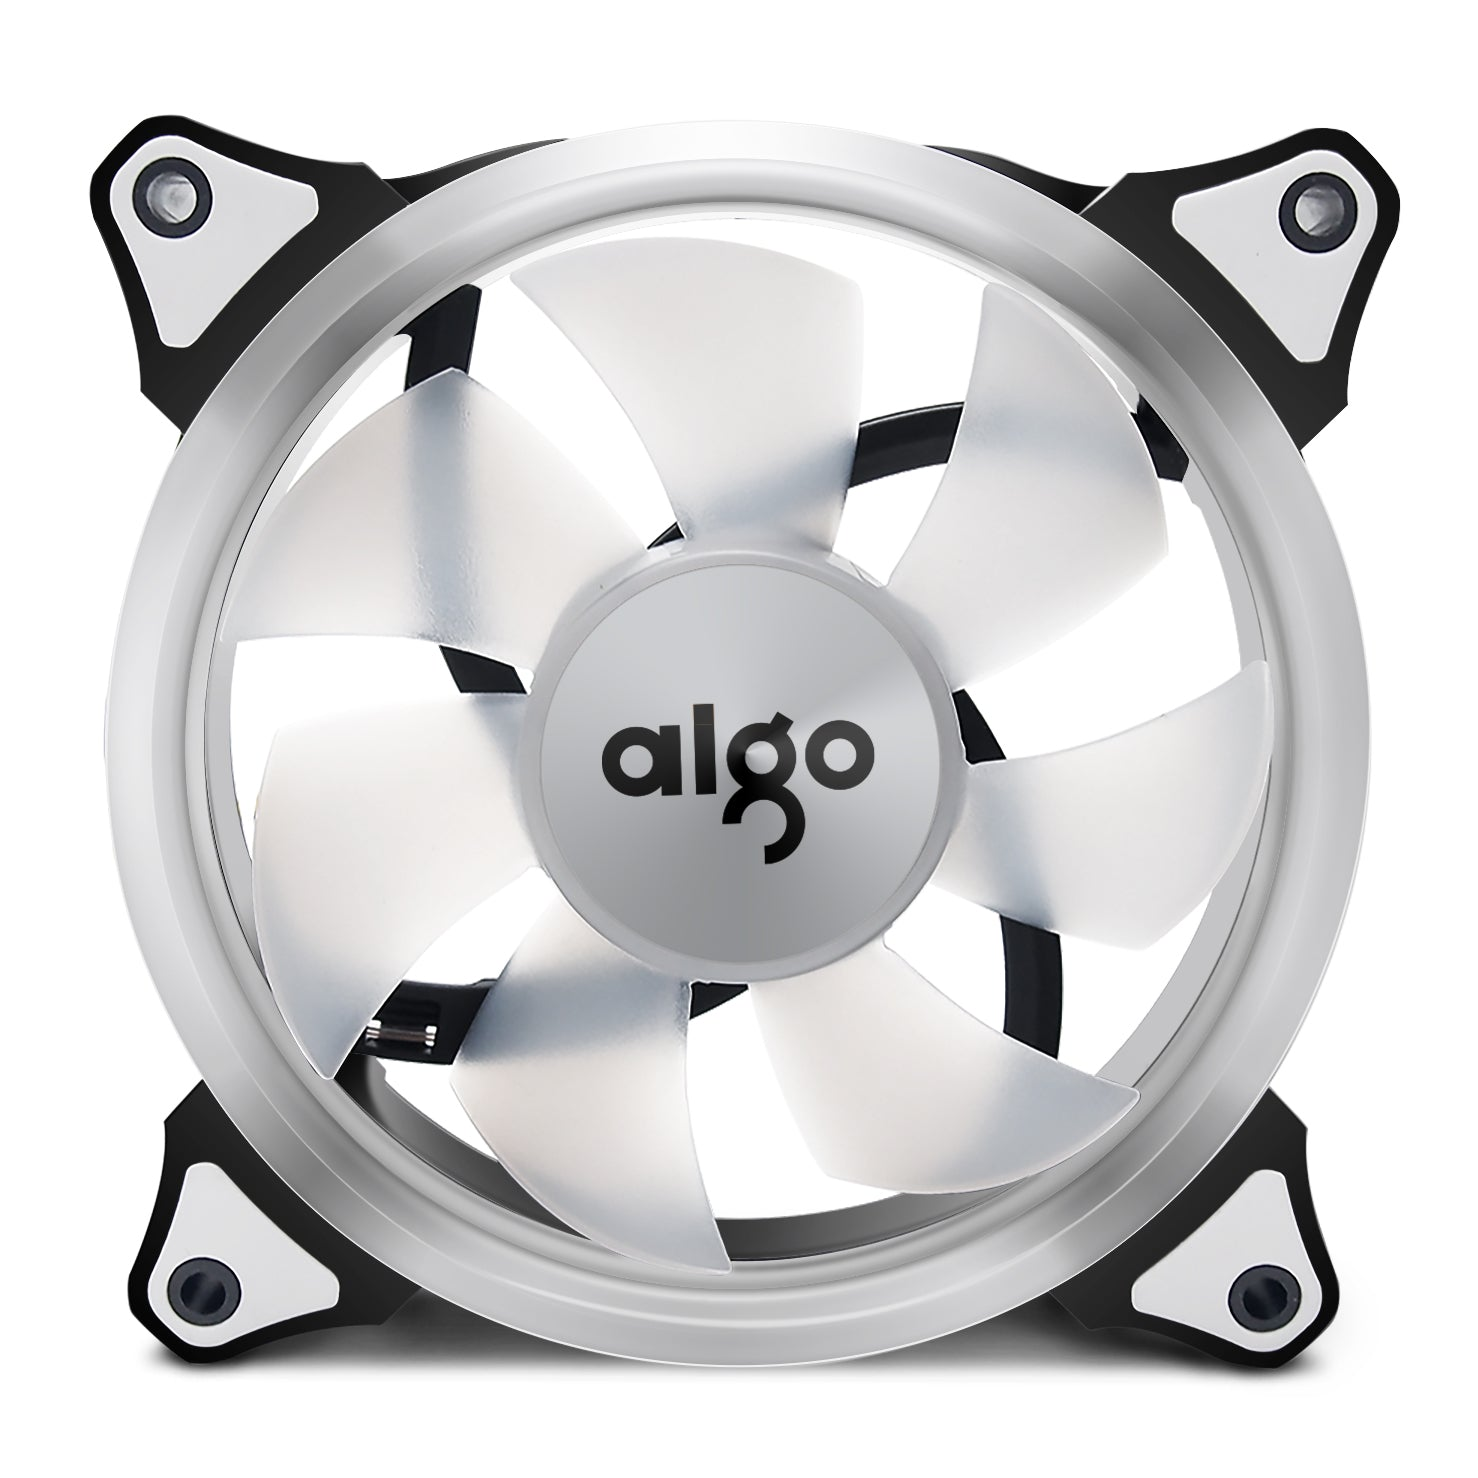 Aigo Halo Ring White LED 140mm 14cm PC Computer Case Cooling Neon Quite Clear Fan Mod 4 Pin/3 Pin